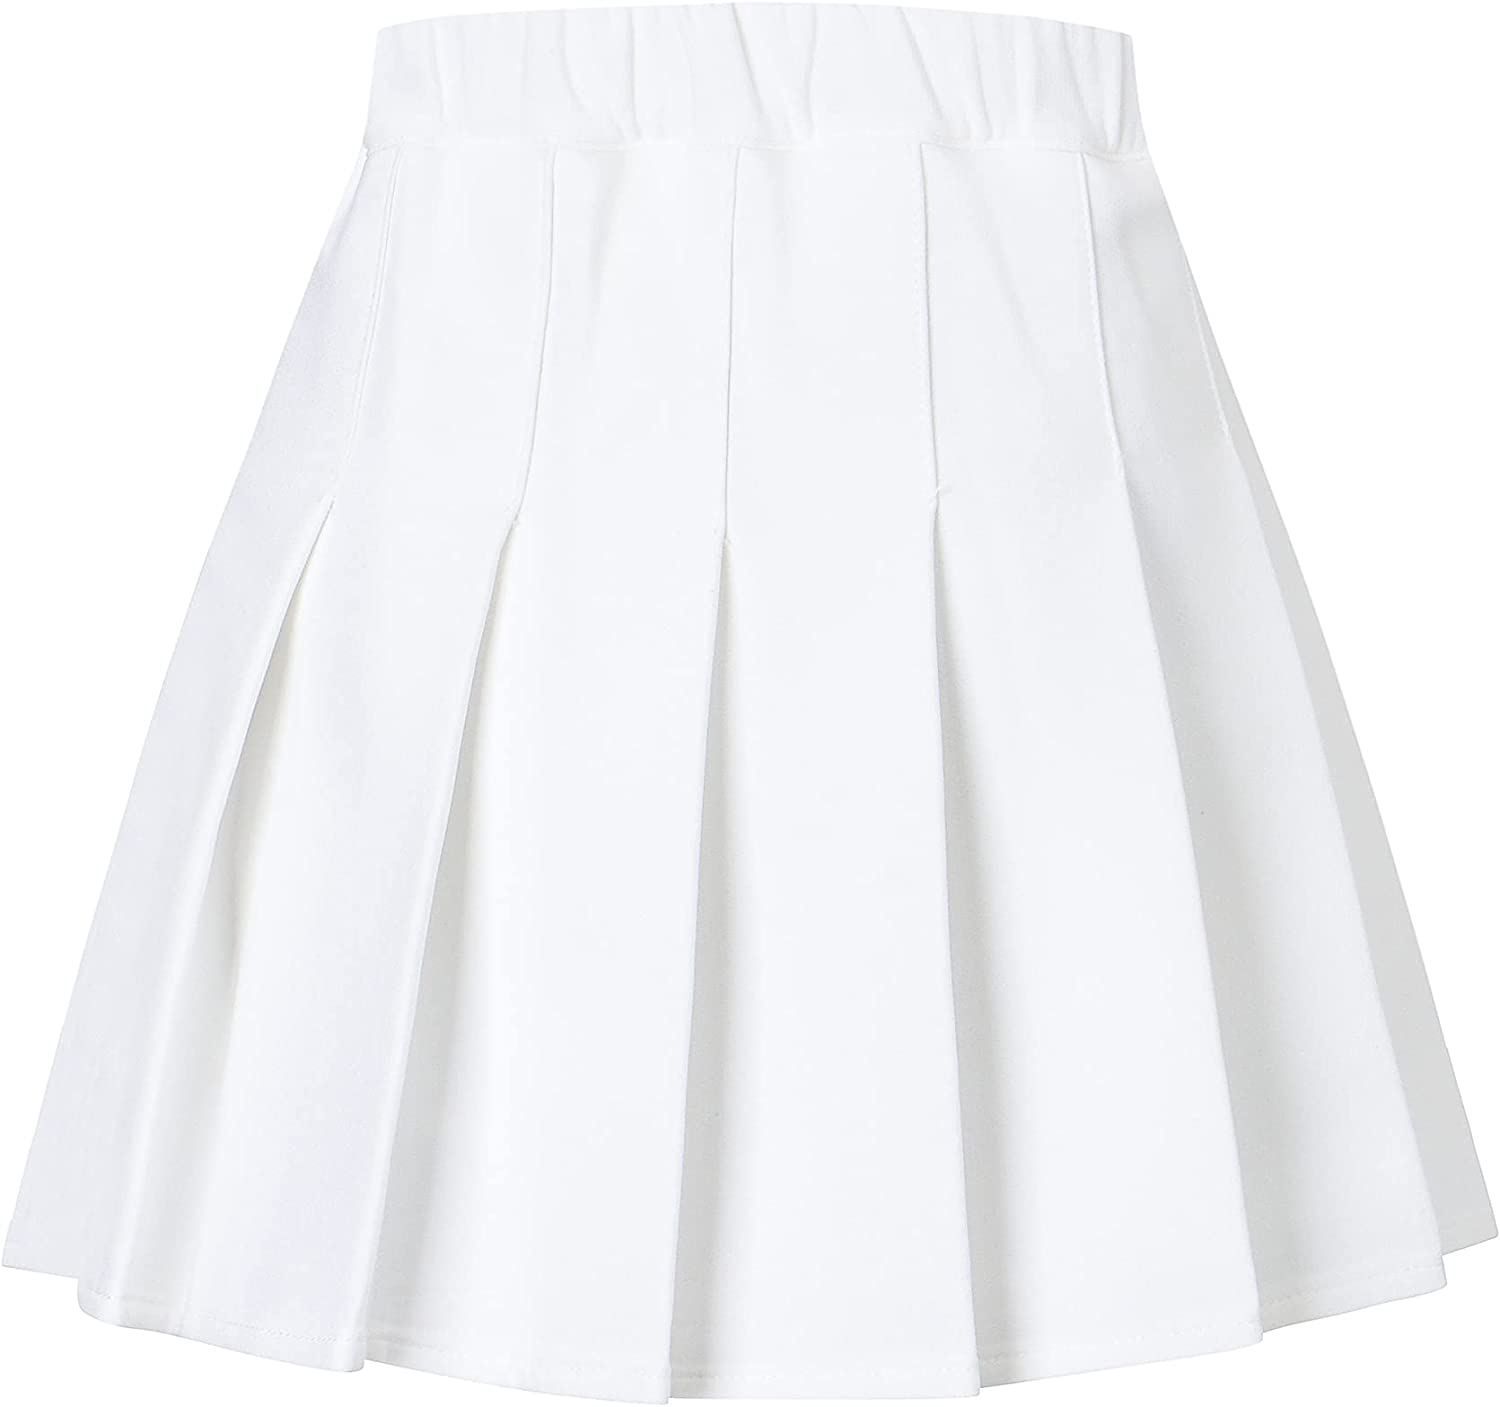 SANGTREE Girls Women's Pleated Skirt with Comfy Stretchy Band, 2 Years - US 2XL: Clothing